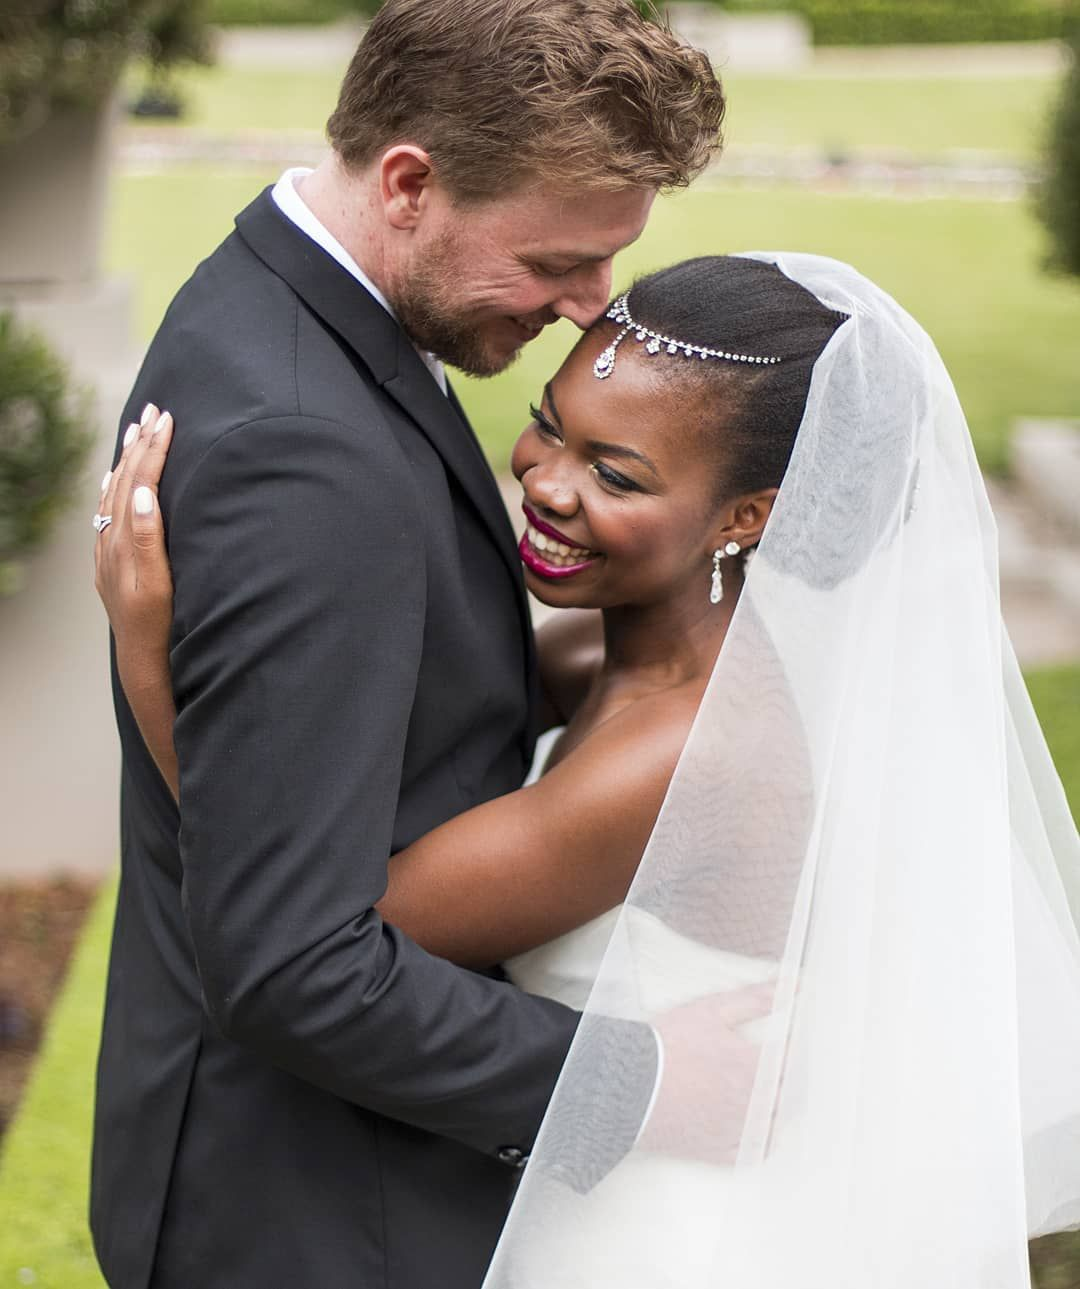 New dating app black white interracial dating provides a safe platform for interracial relationships